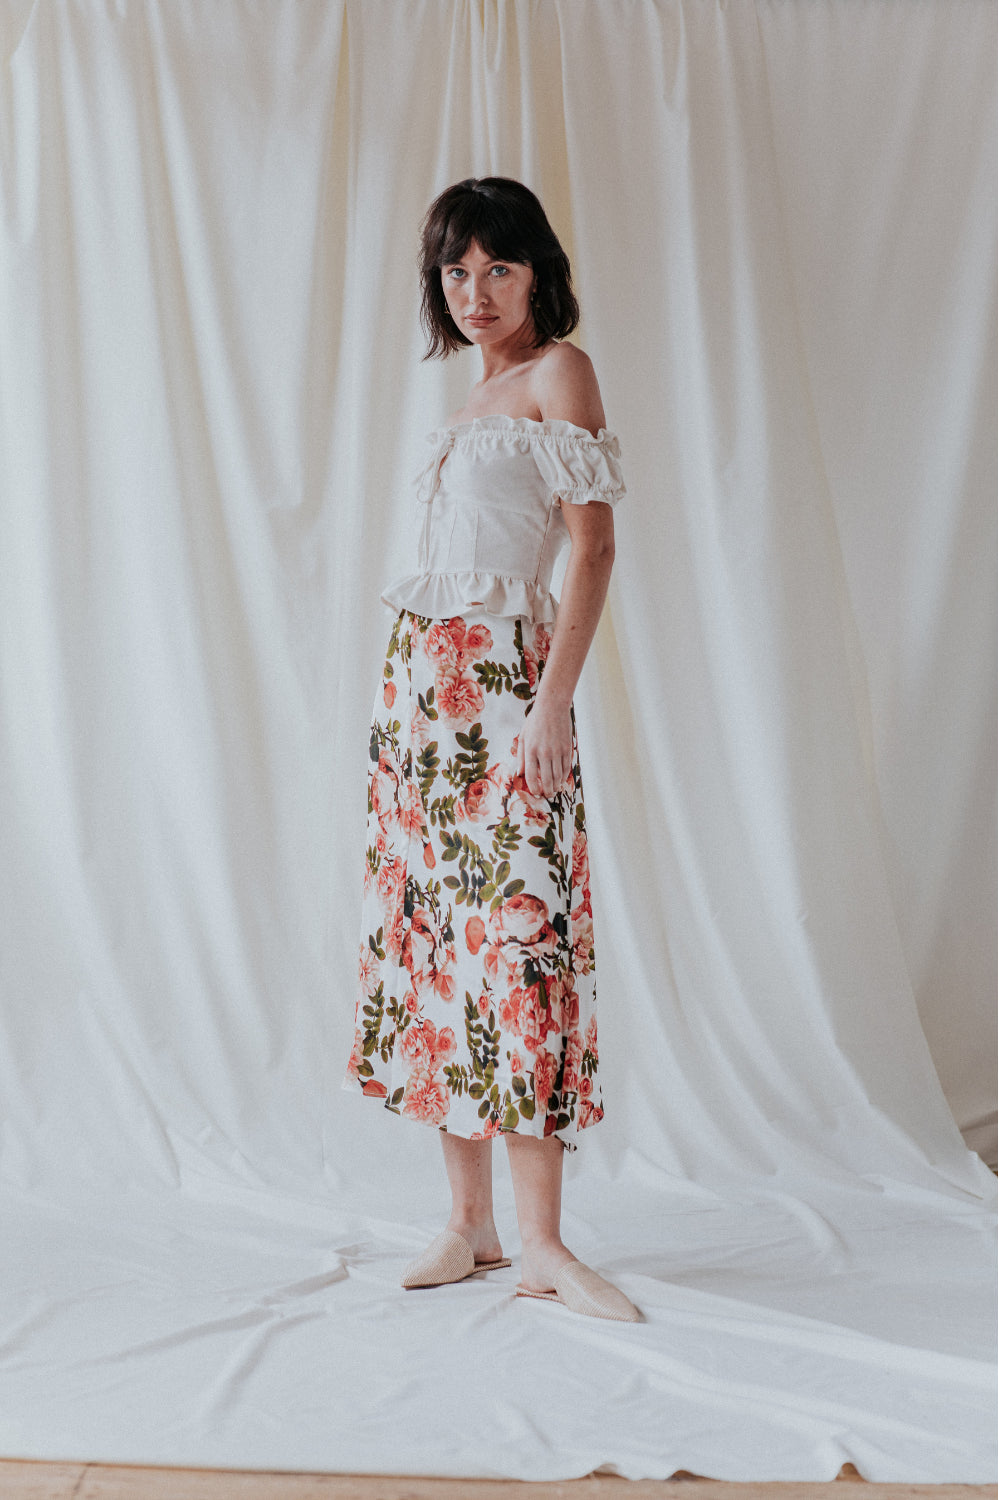 UNIQUE 21 Floral Midi Slip Skirt With Side Slits Modest Below The Knee Skirt Flowy Hem with Pink Flowers Design